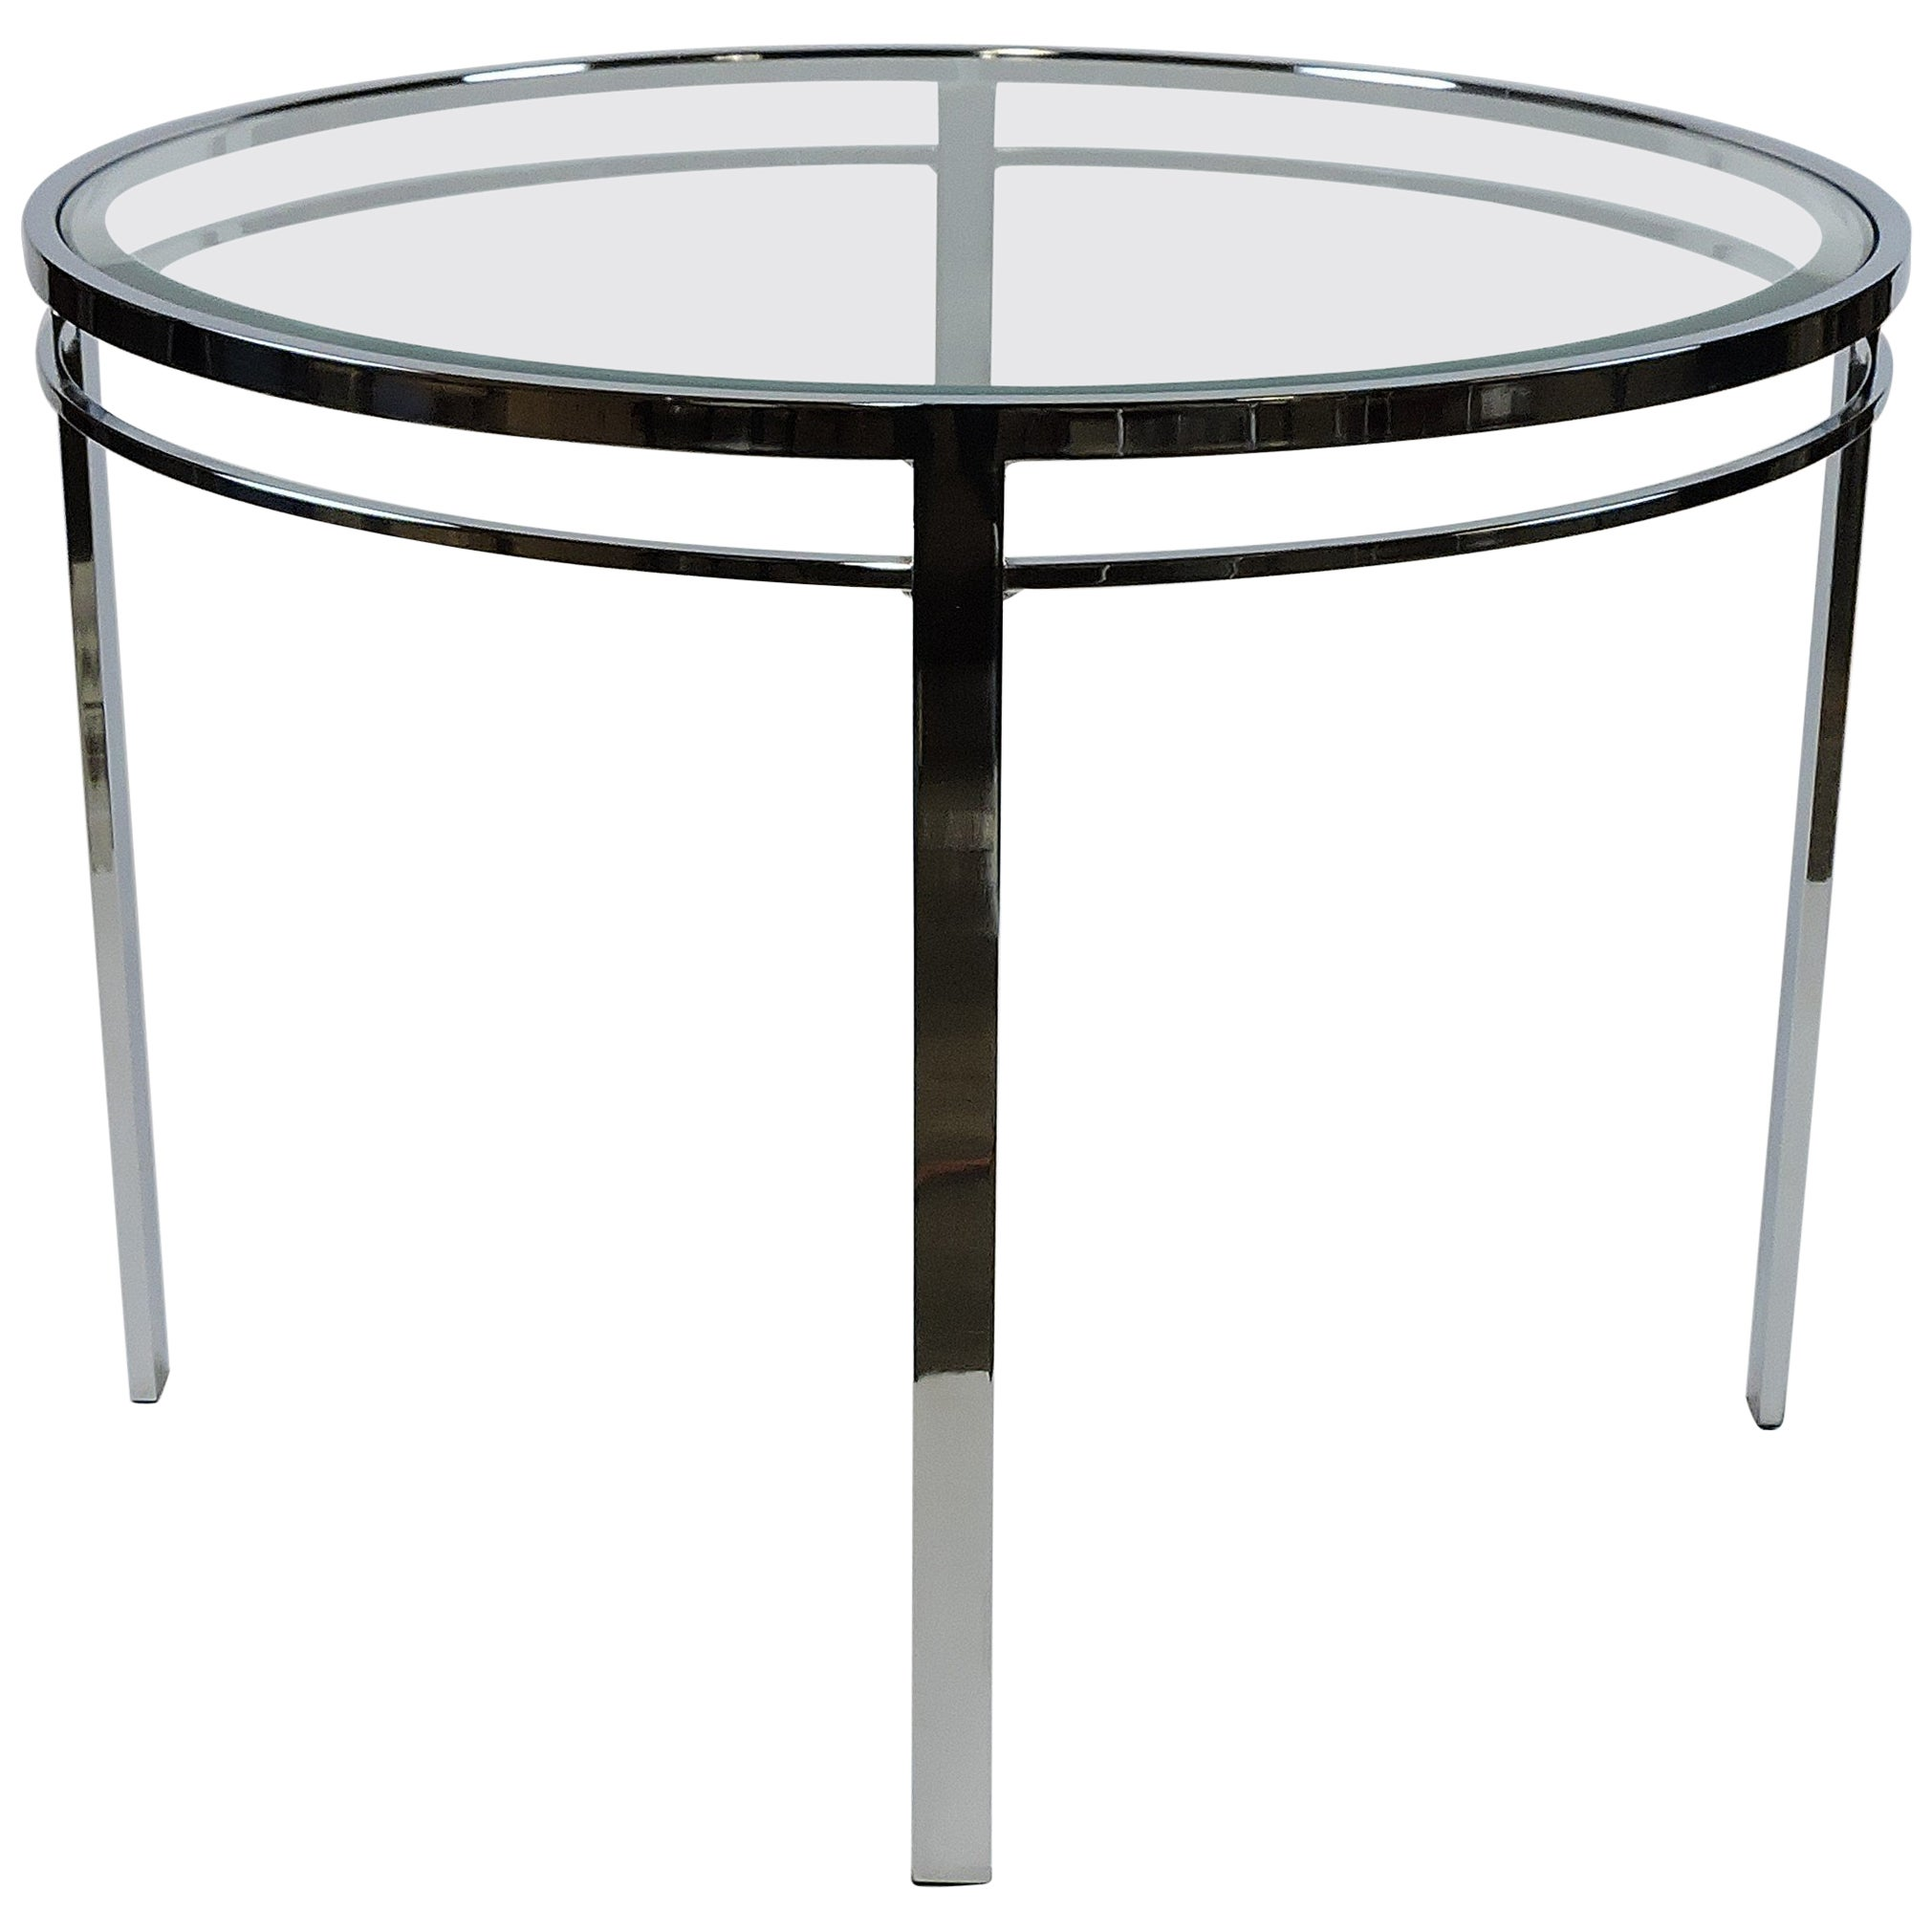 1b86905e931db Chrome and Glass Mid-Century Modern Round Dining Table at 1stdibs